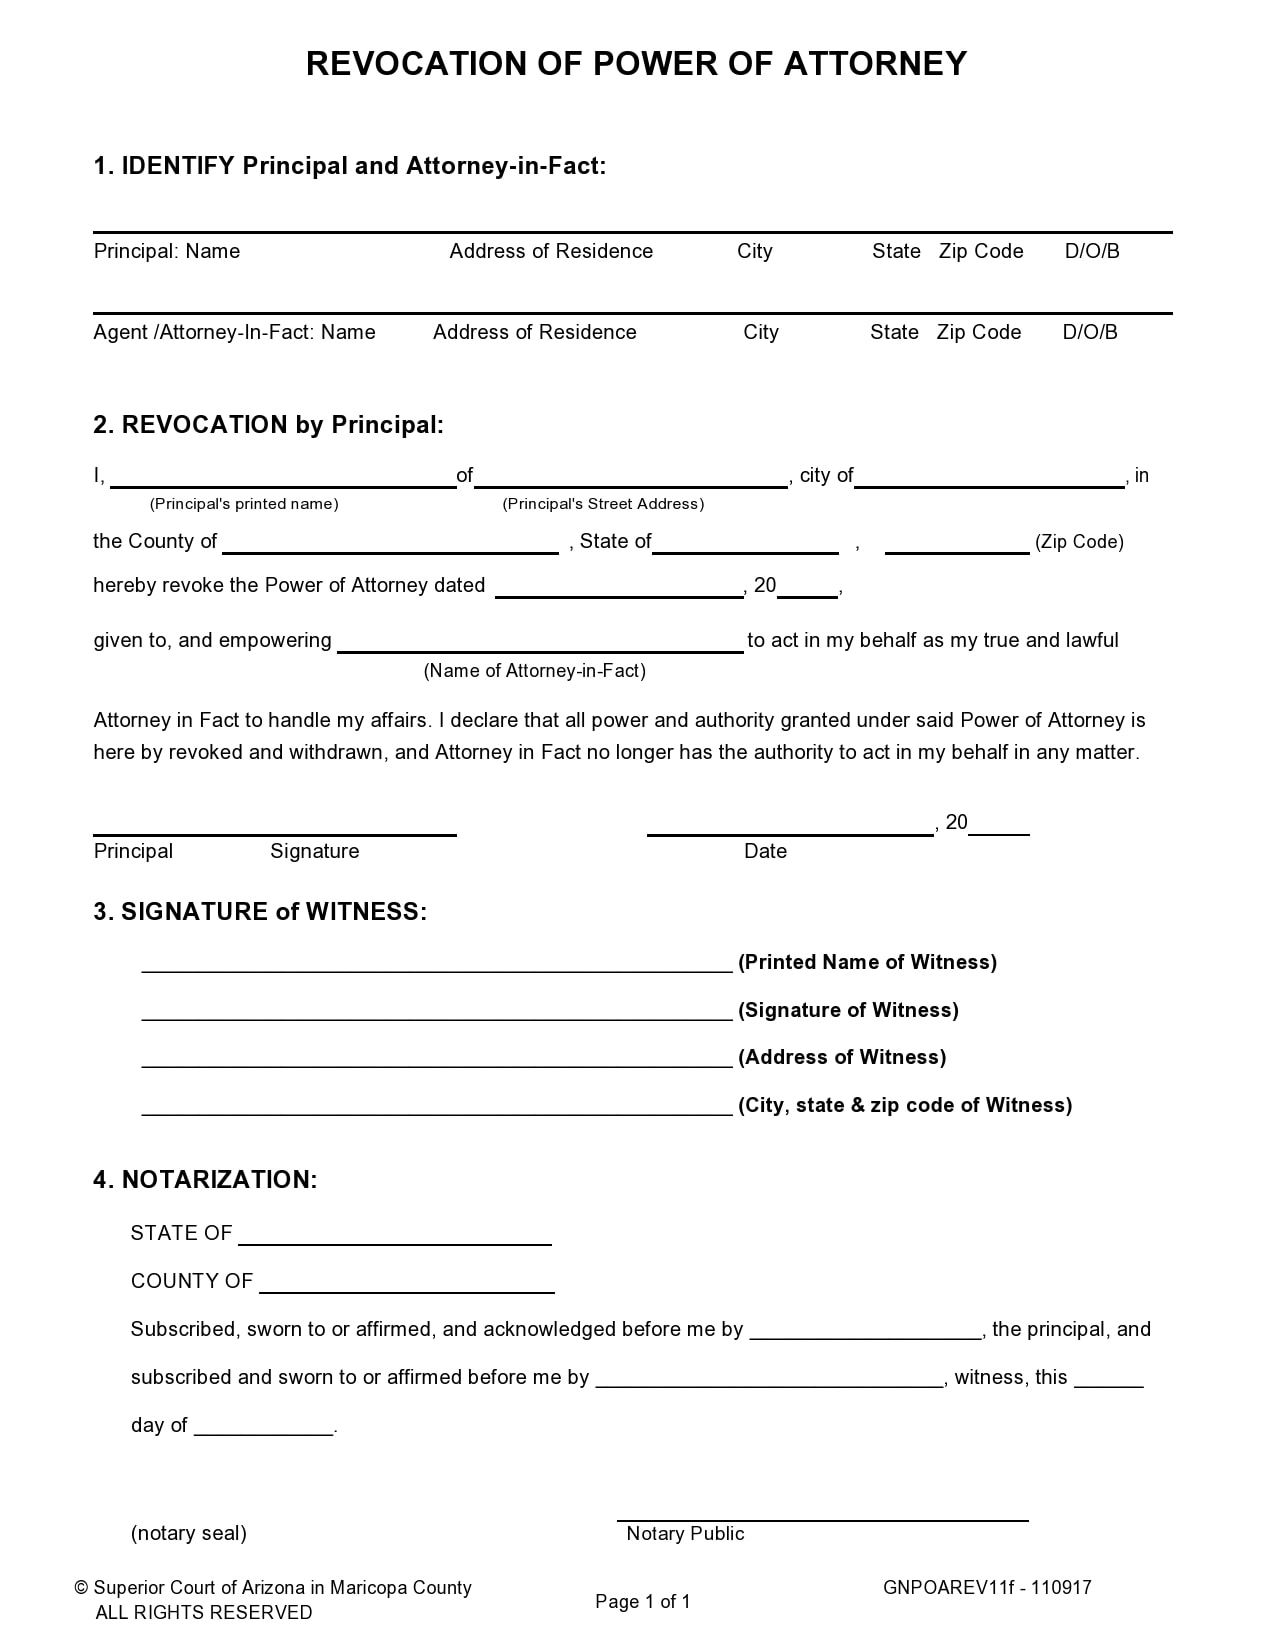 power of attorney revocation form 09